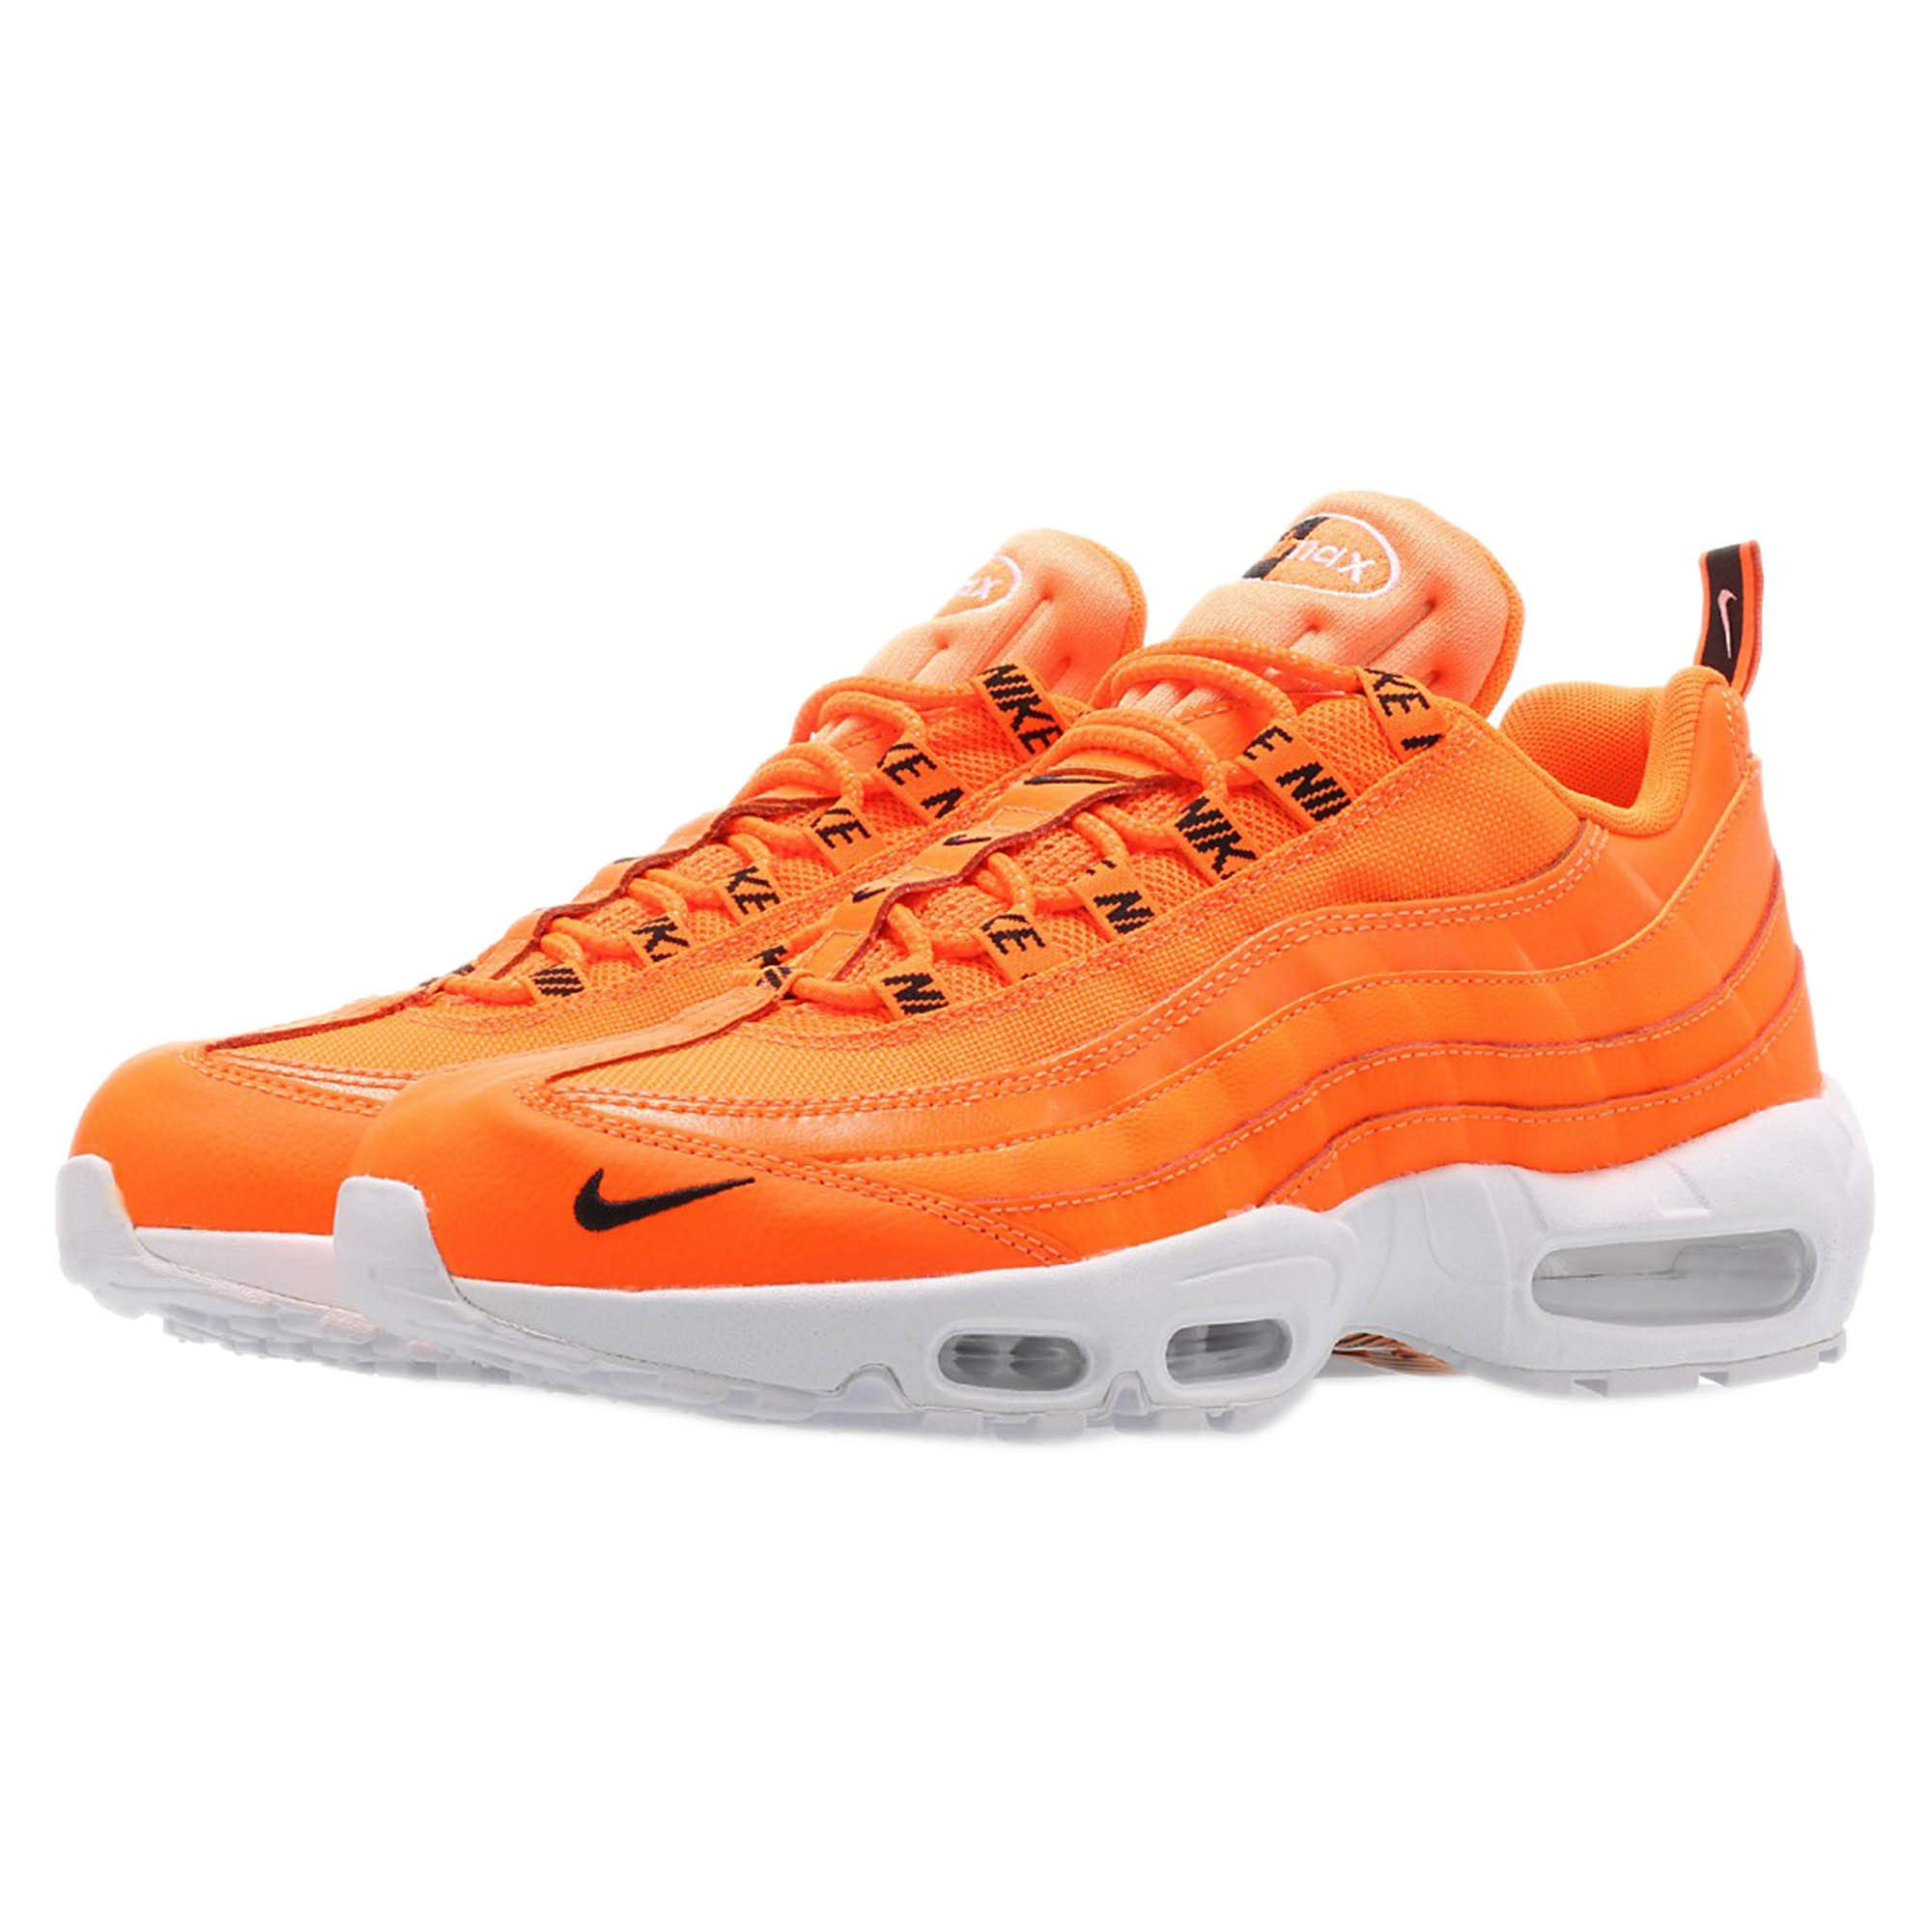 sports shoes 038a7 057db Galleon - NIKE Air Max 95 PRM Overbranding Mens Style   538416-801 Size    10 M US